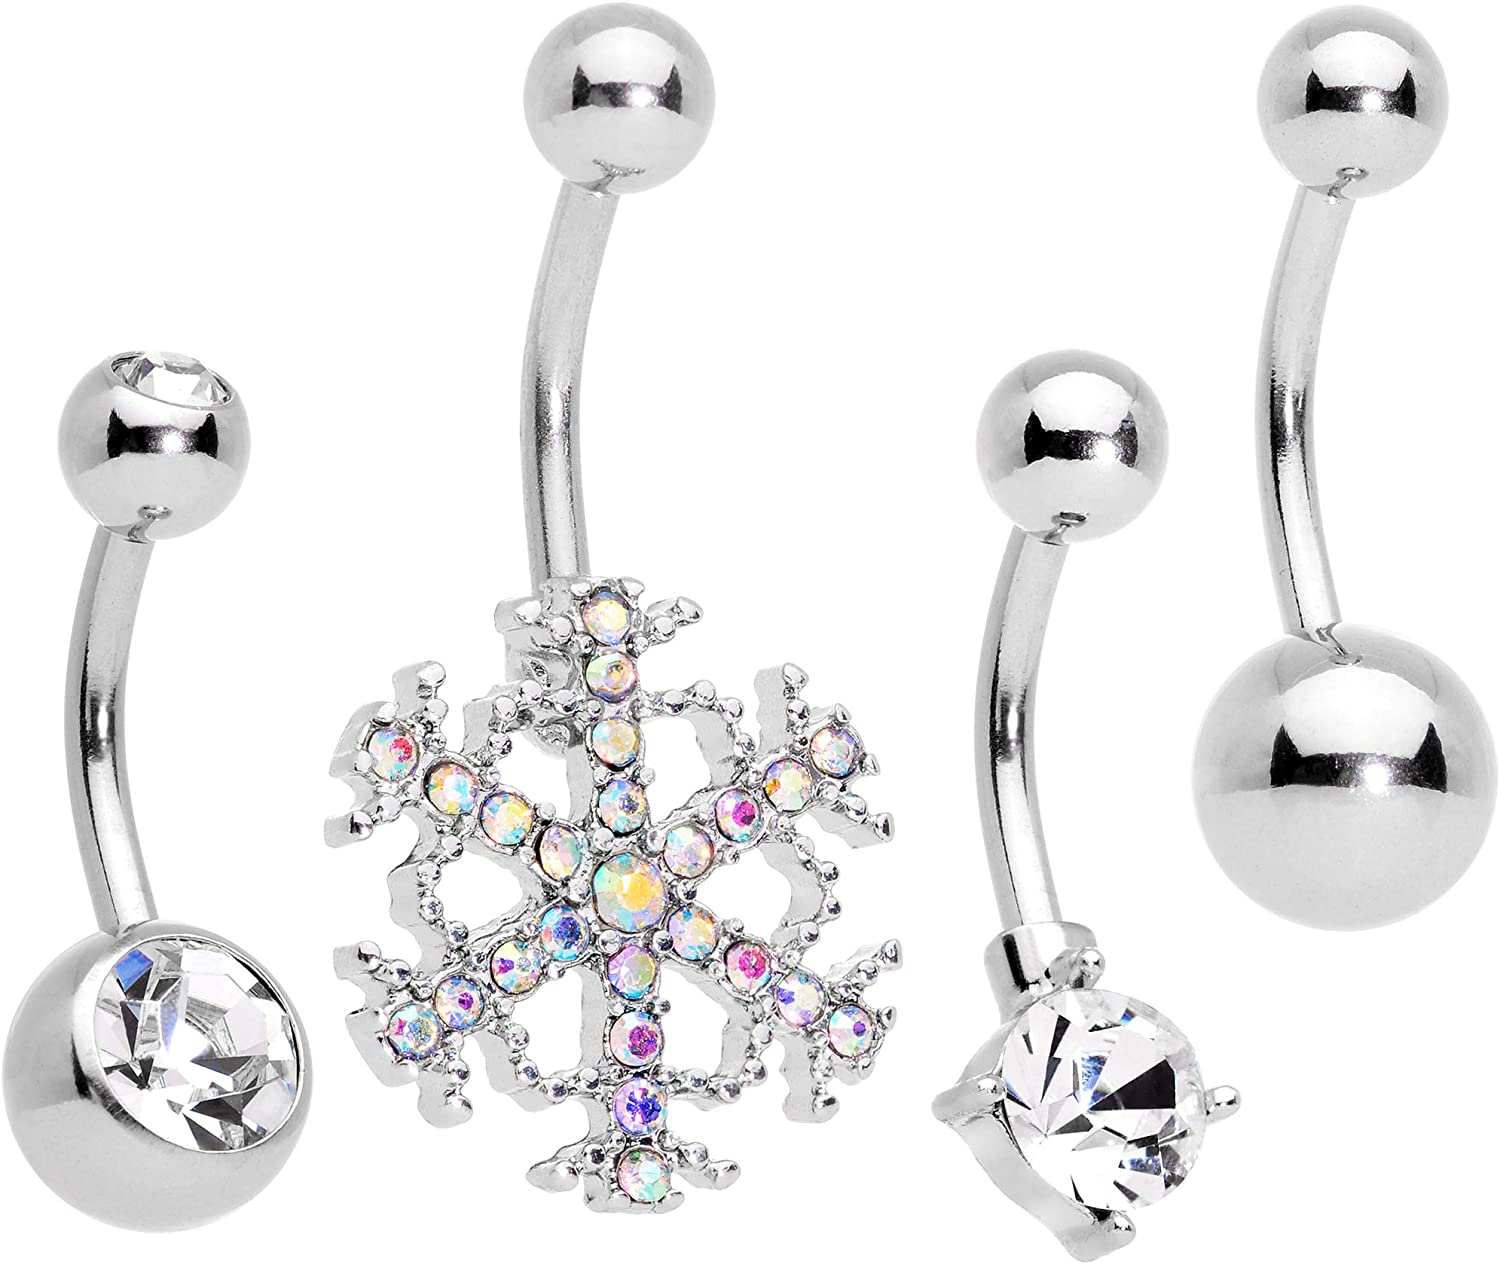 Body Candy 316L Steel Navel Ring Piercing Clear Accent Holiday Season Winter Snowflake Belly Button Ring 14G